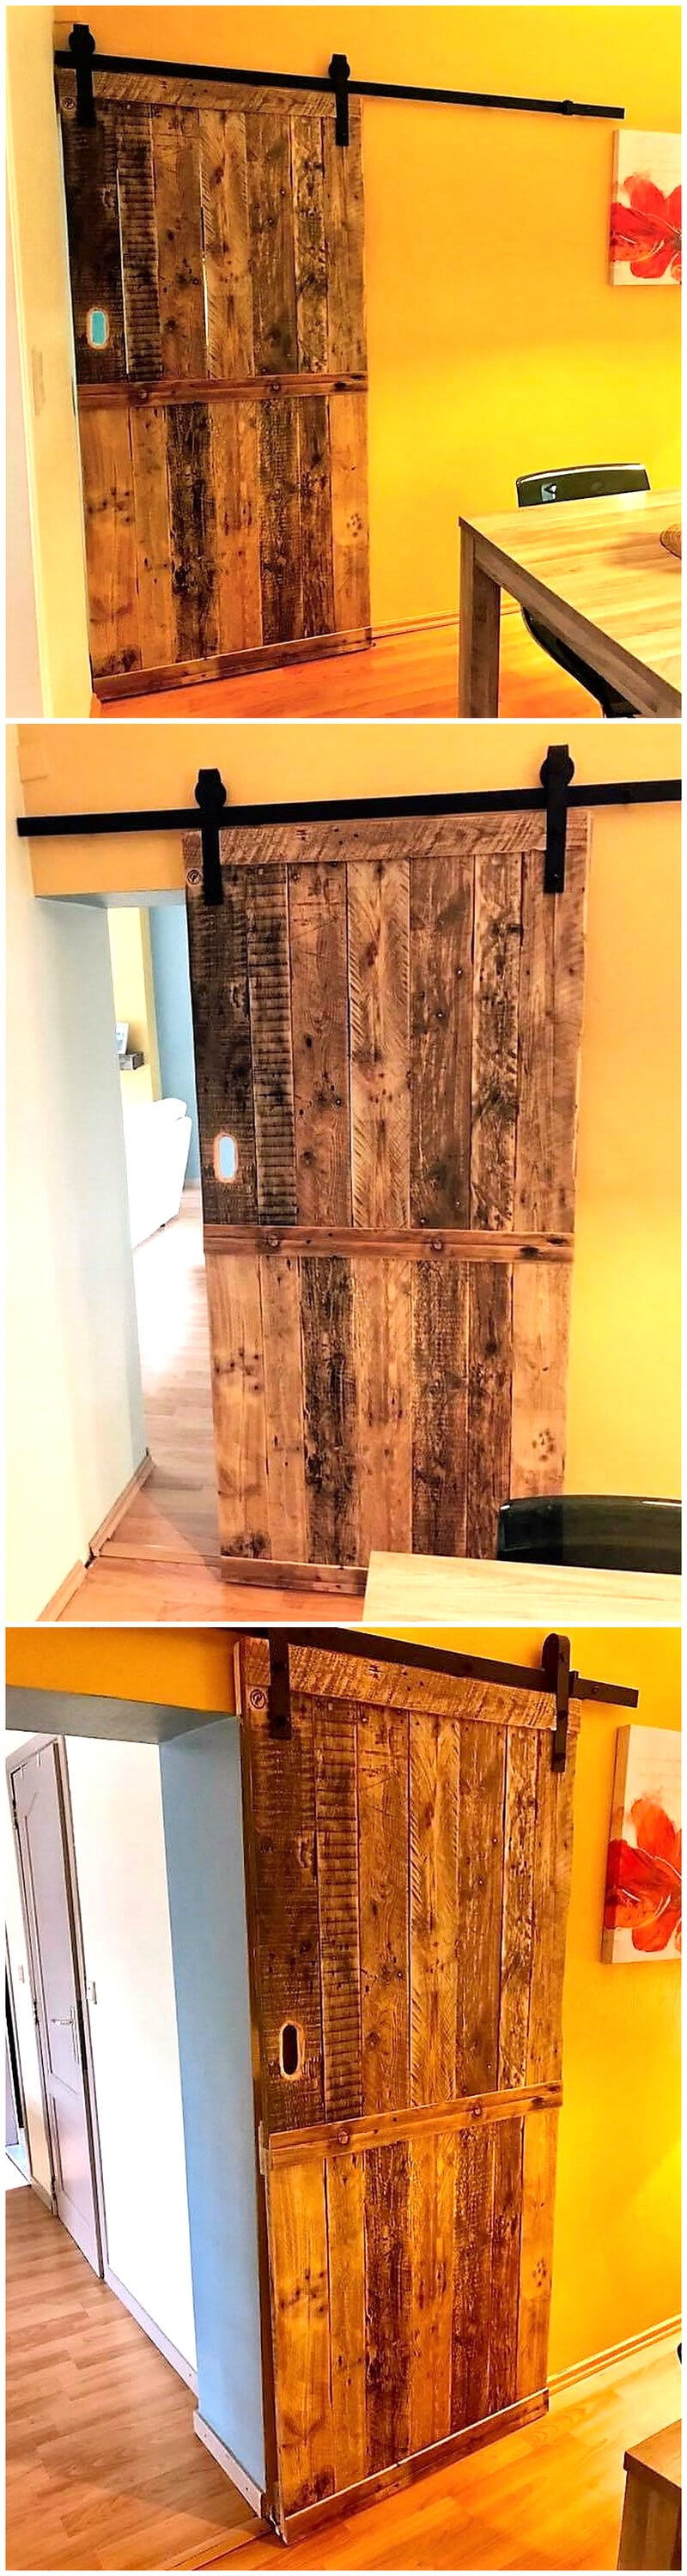 recycled pallets wooden door